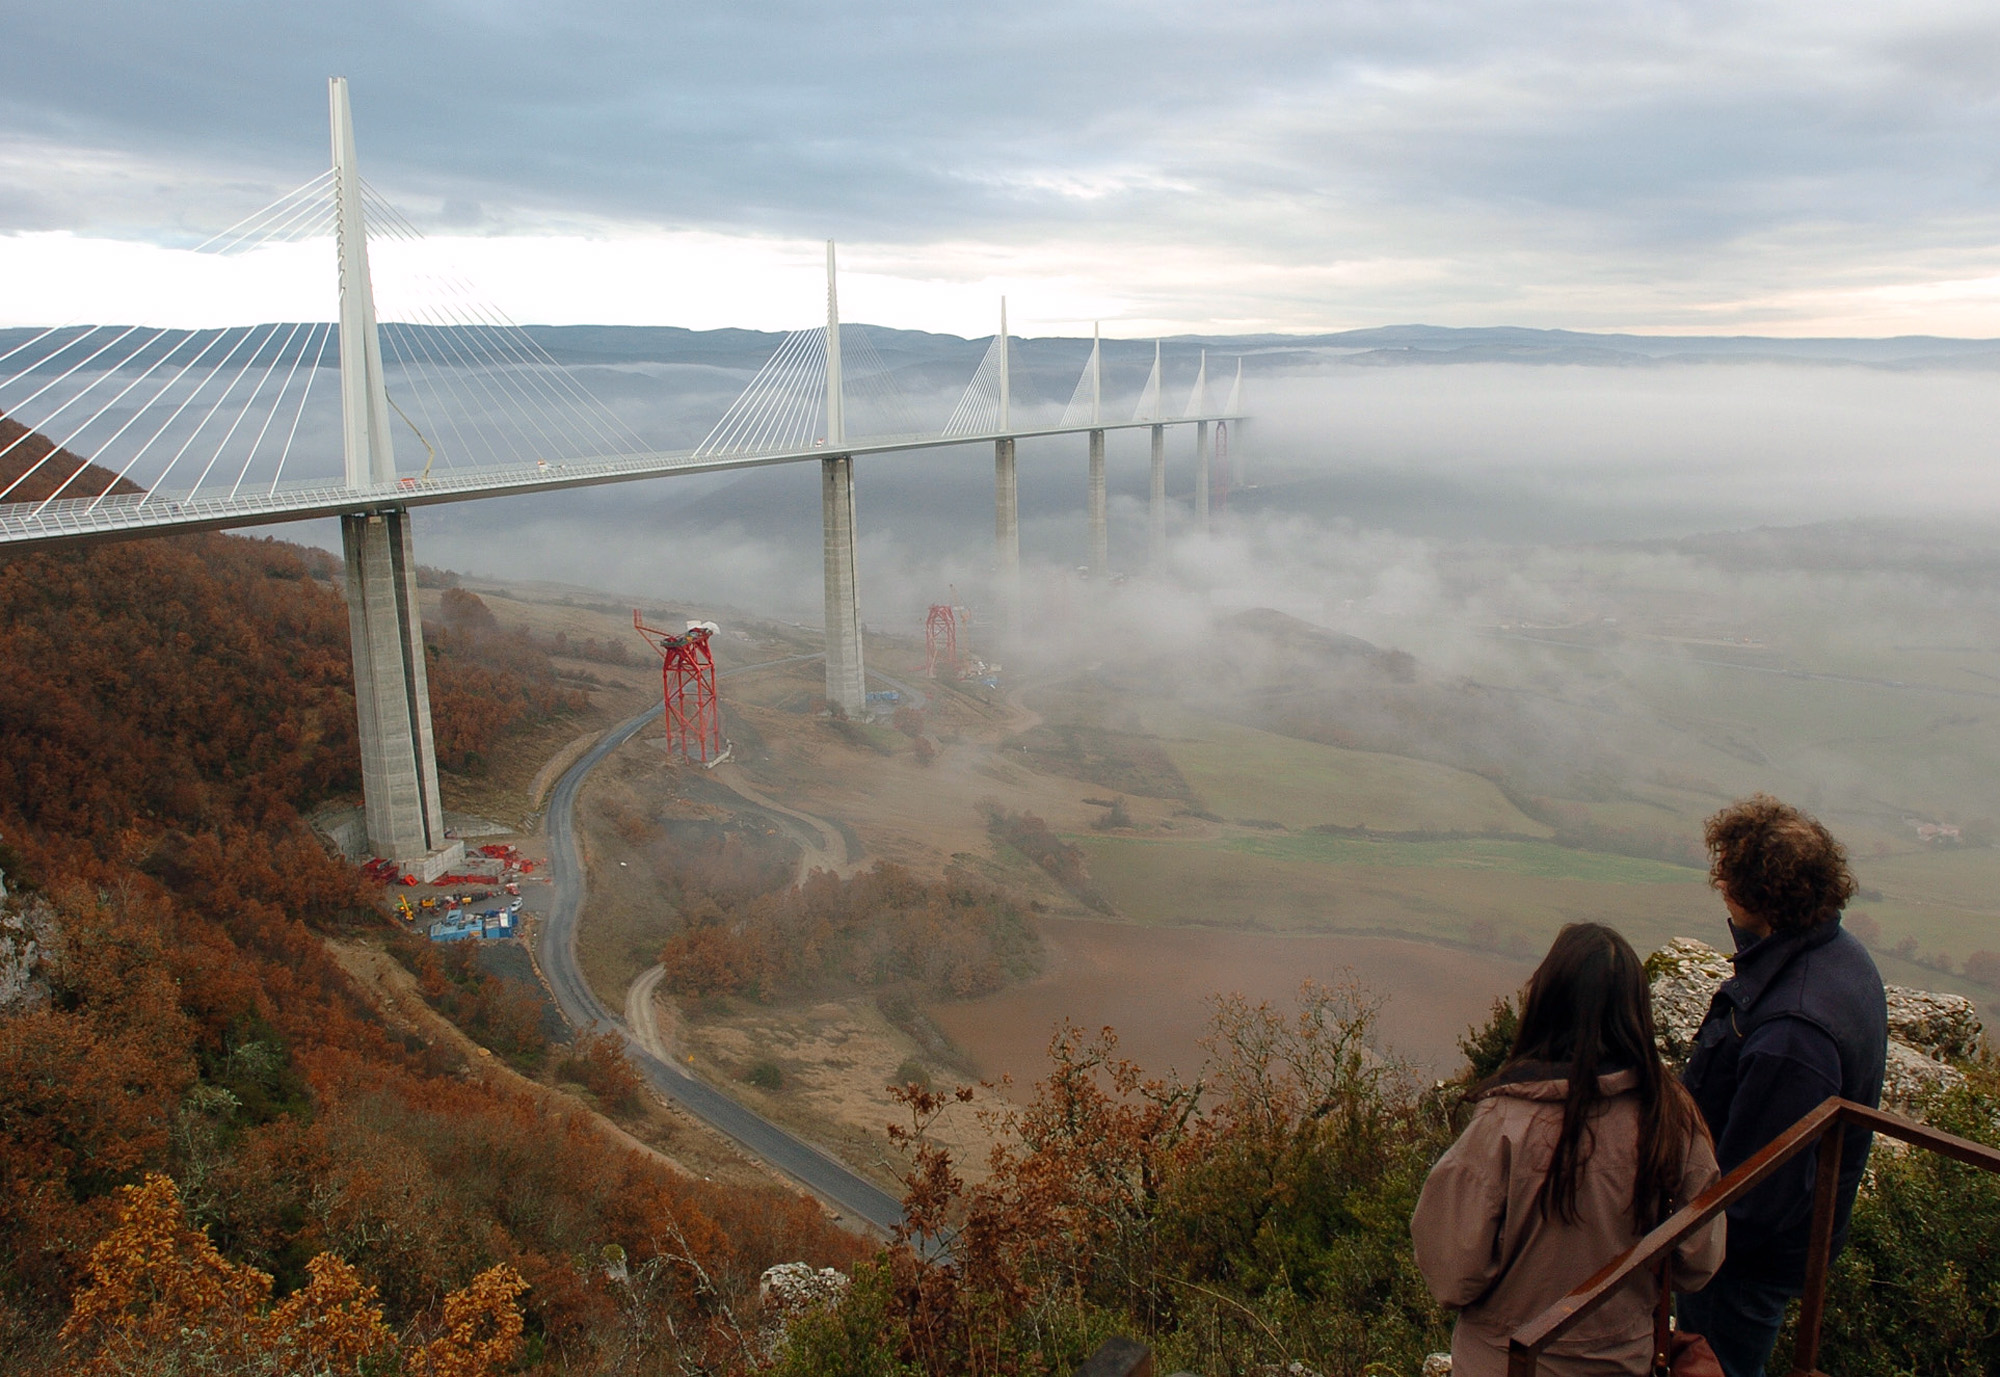 Millau France  City new picture : Millau bridge France Millau bridge France 102208 Free Image ...